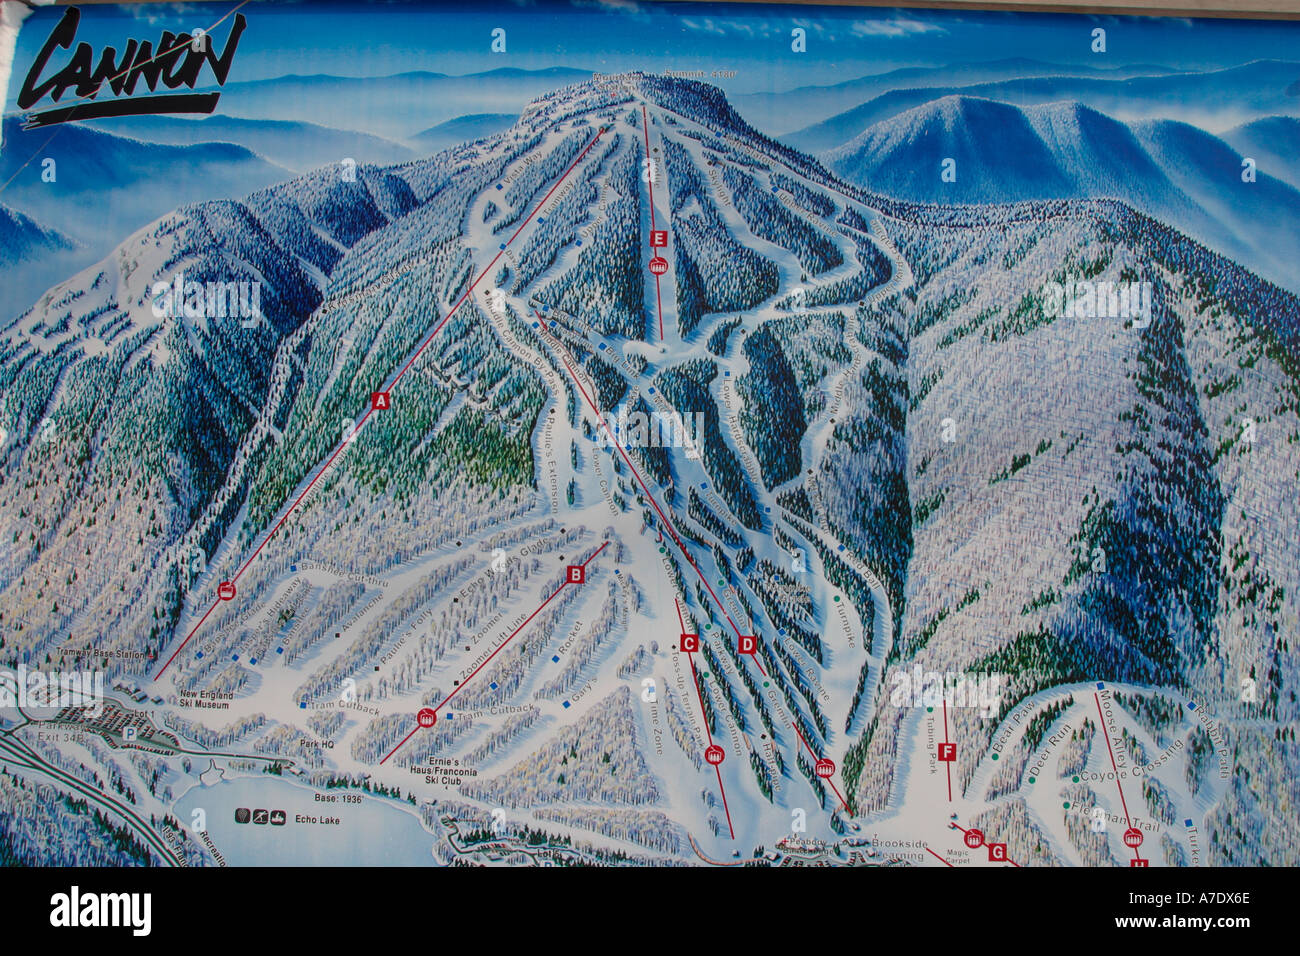 Trail Map at Cannon Ski Area Franconia Notch State Park Franconia NH on